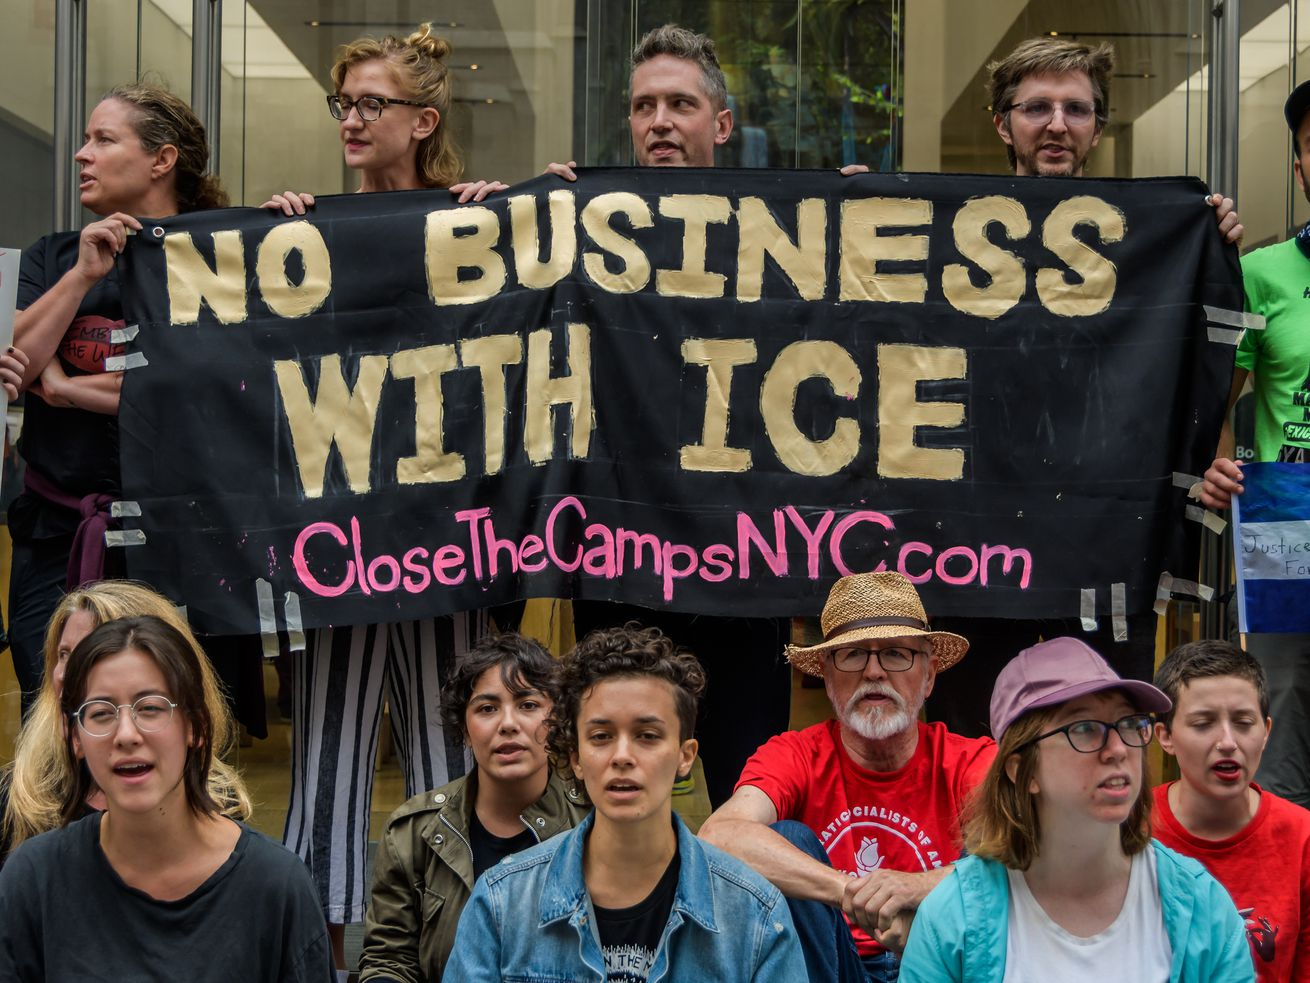 """A group of around 12 protestors holding a sign that says """"No business with ICE."""""""